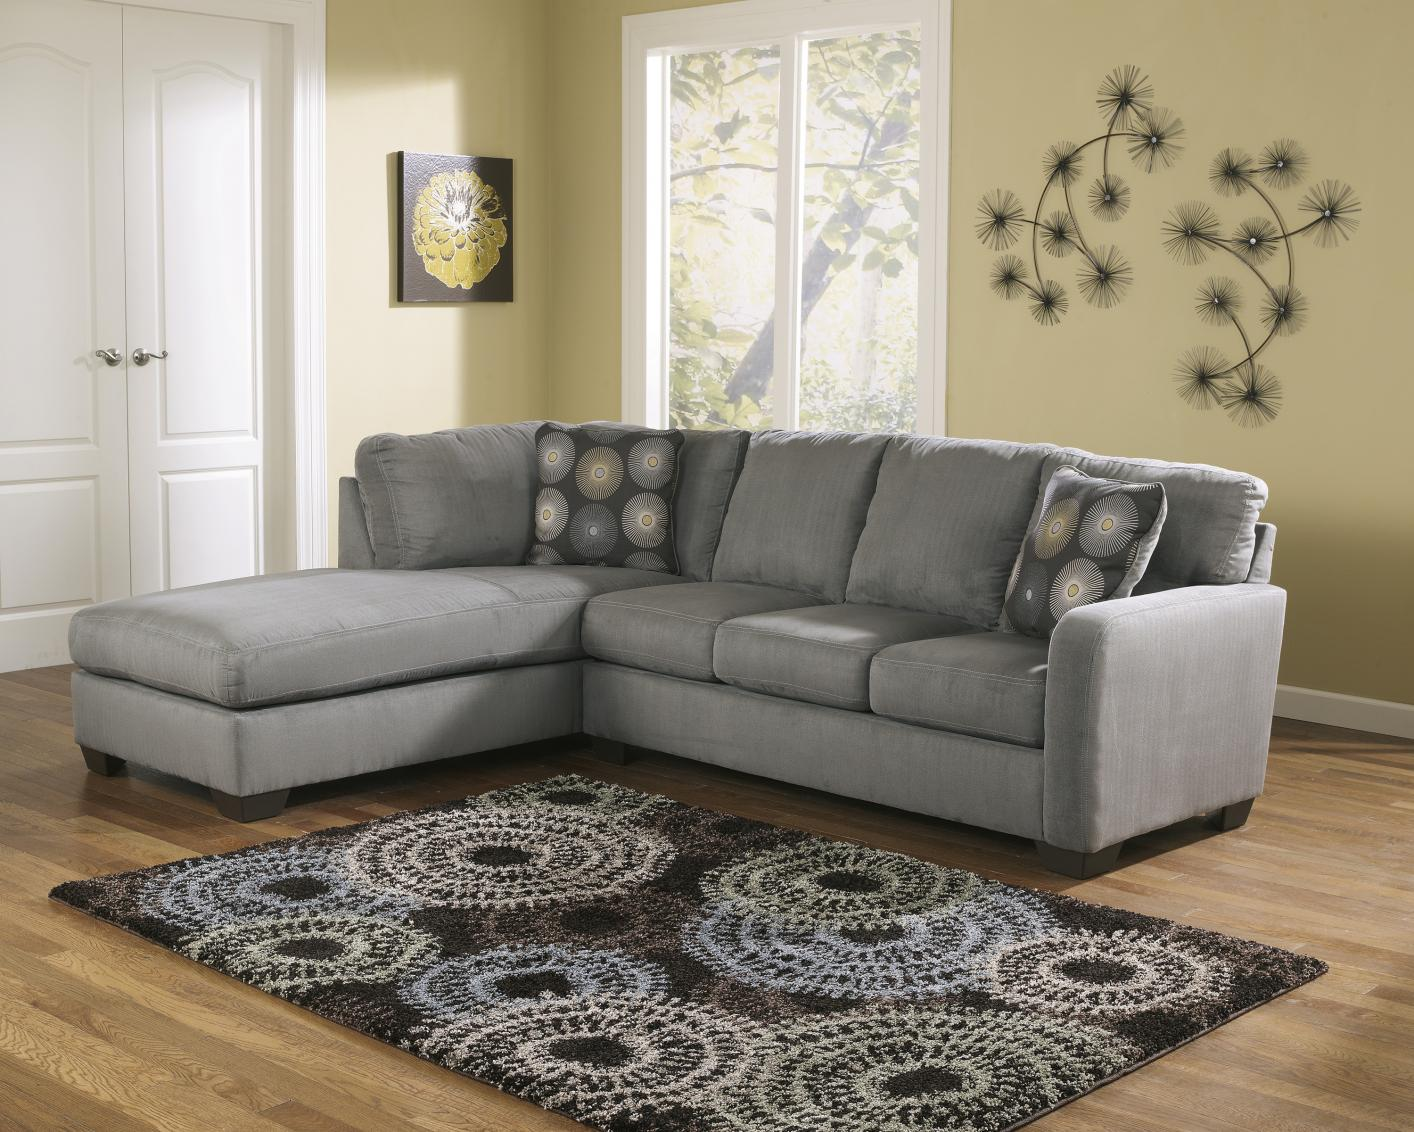 Grey Sectional Couches grey fabric sectional sofa - steal-a-sofa furniture outlet los